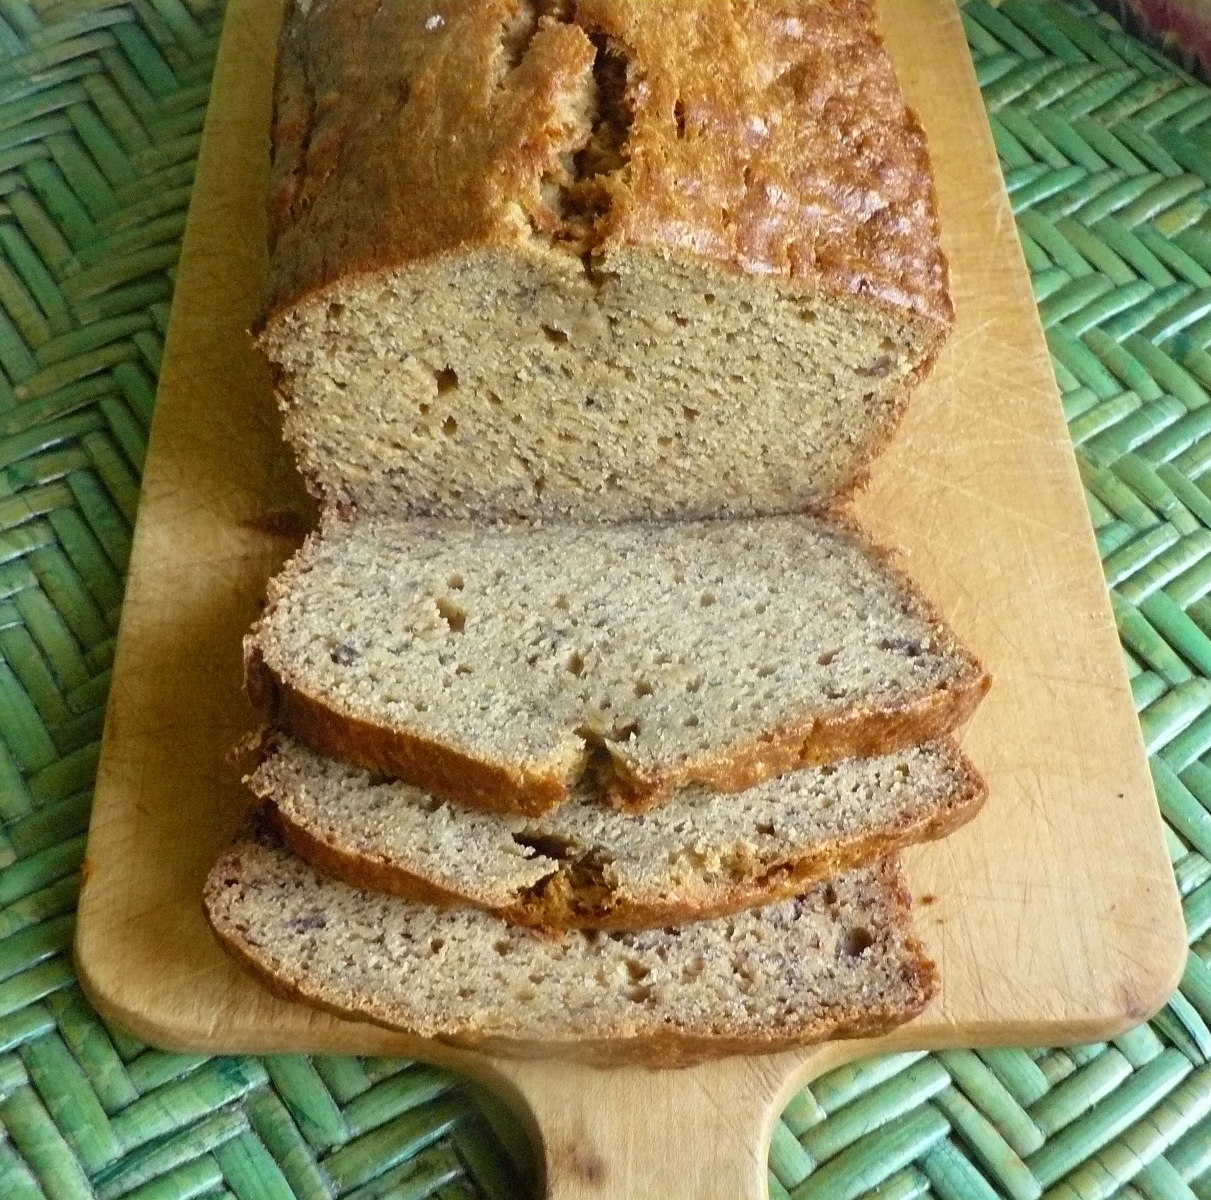 banana bread sliced on a wooden board